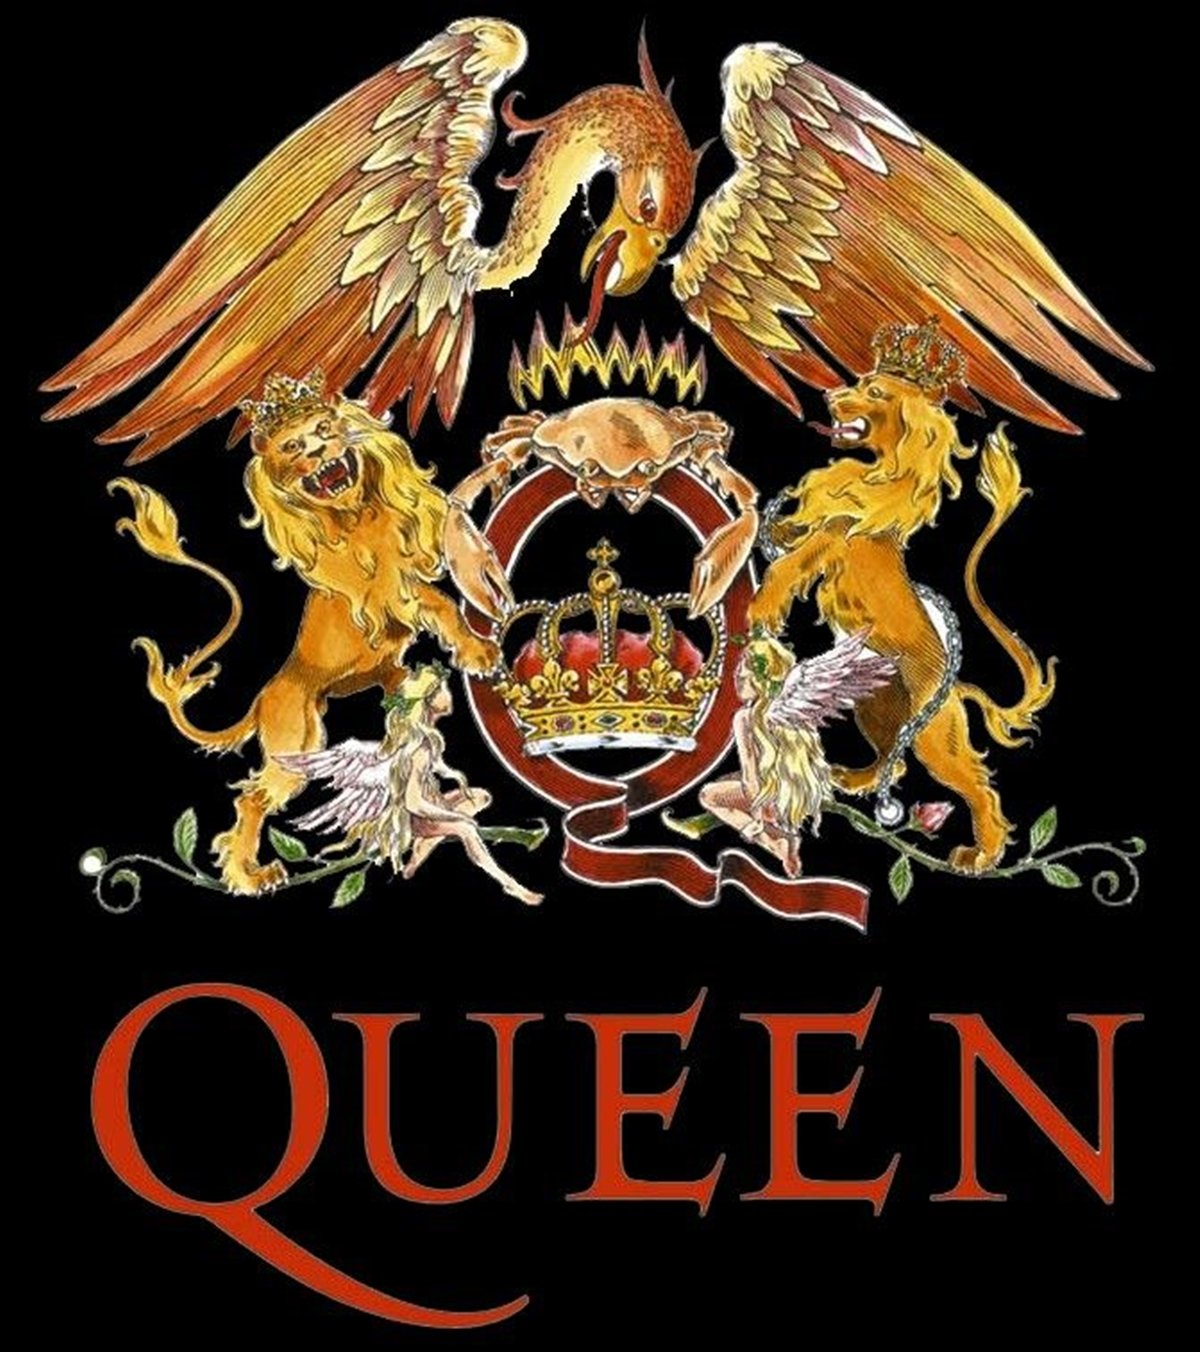 9 12 15 Fascinating Facts About Queen